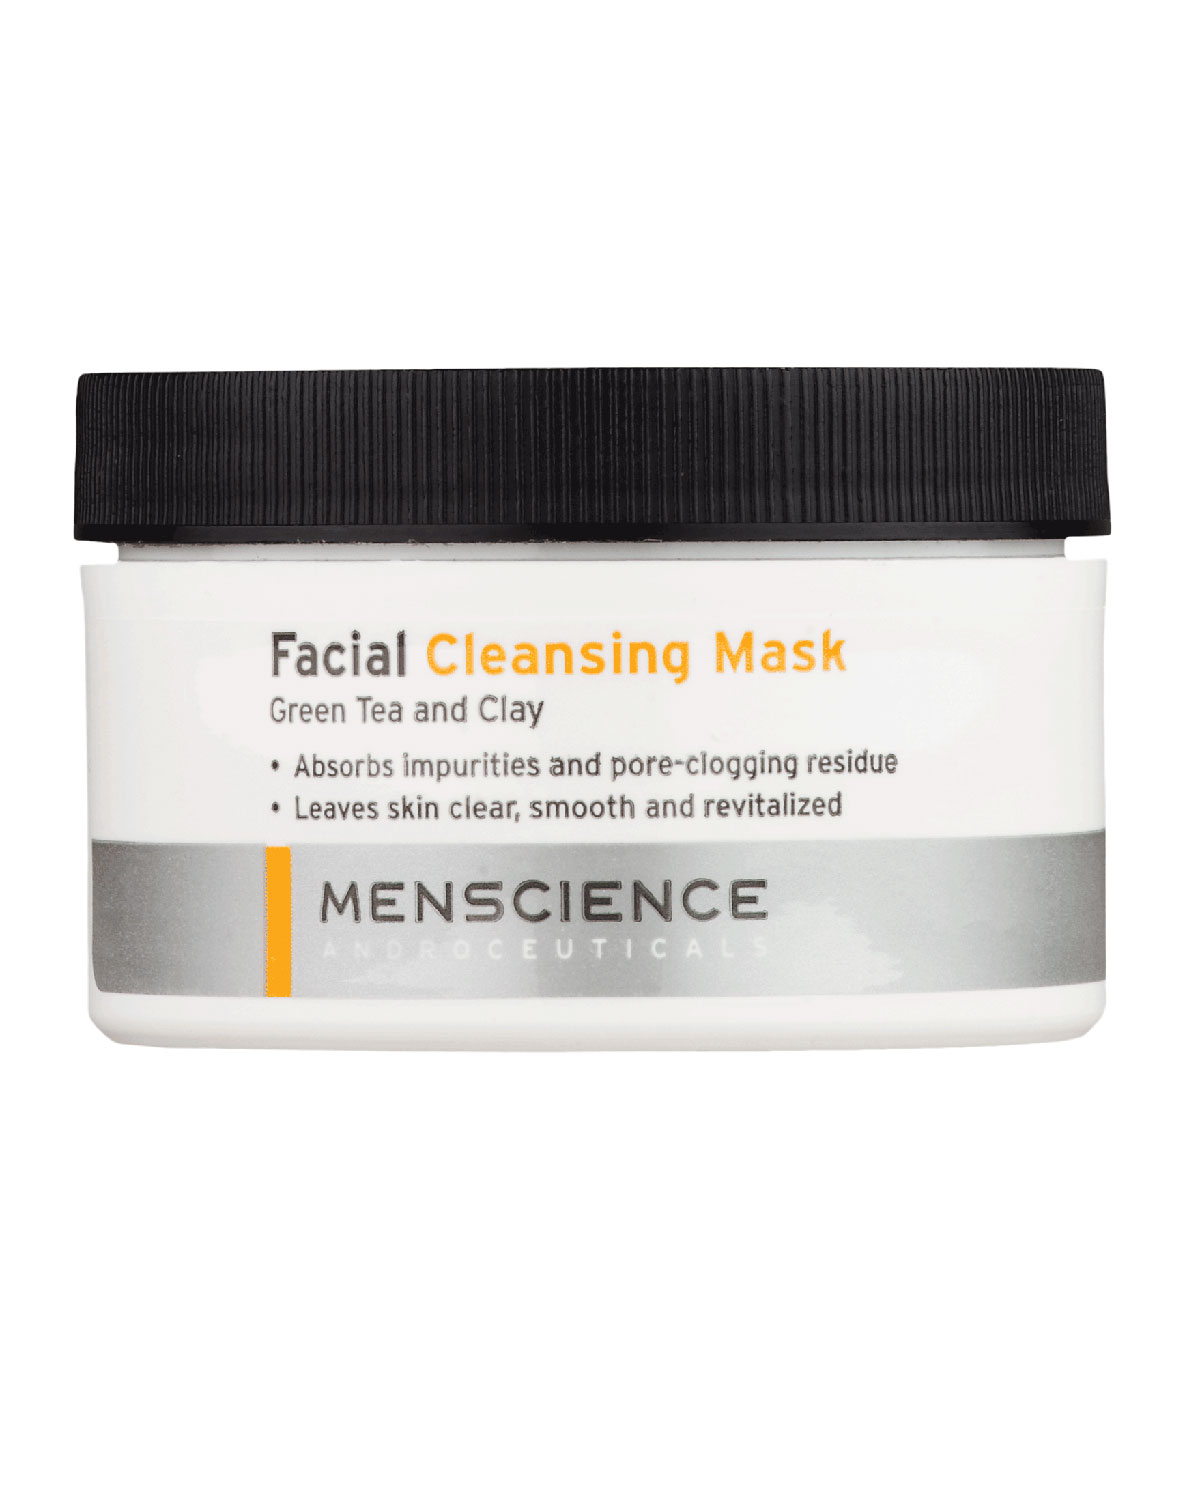 3 oz. Facial Cleansing Mask